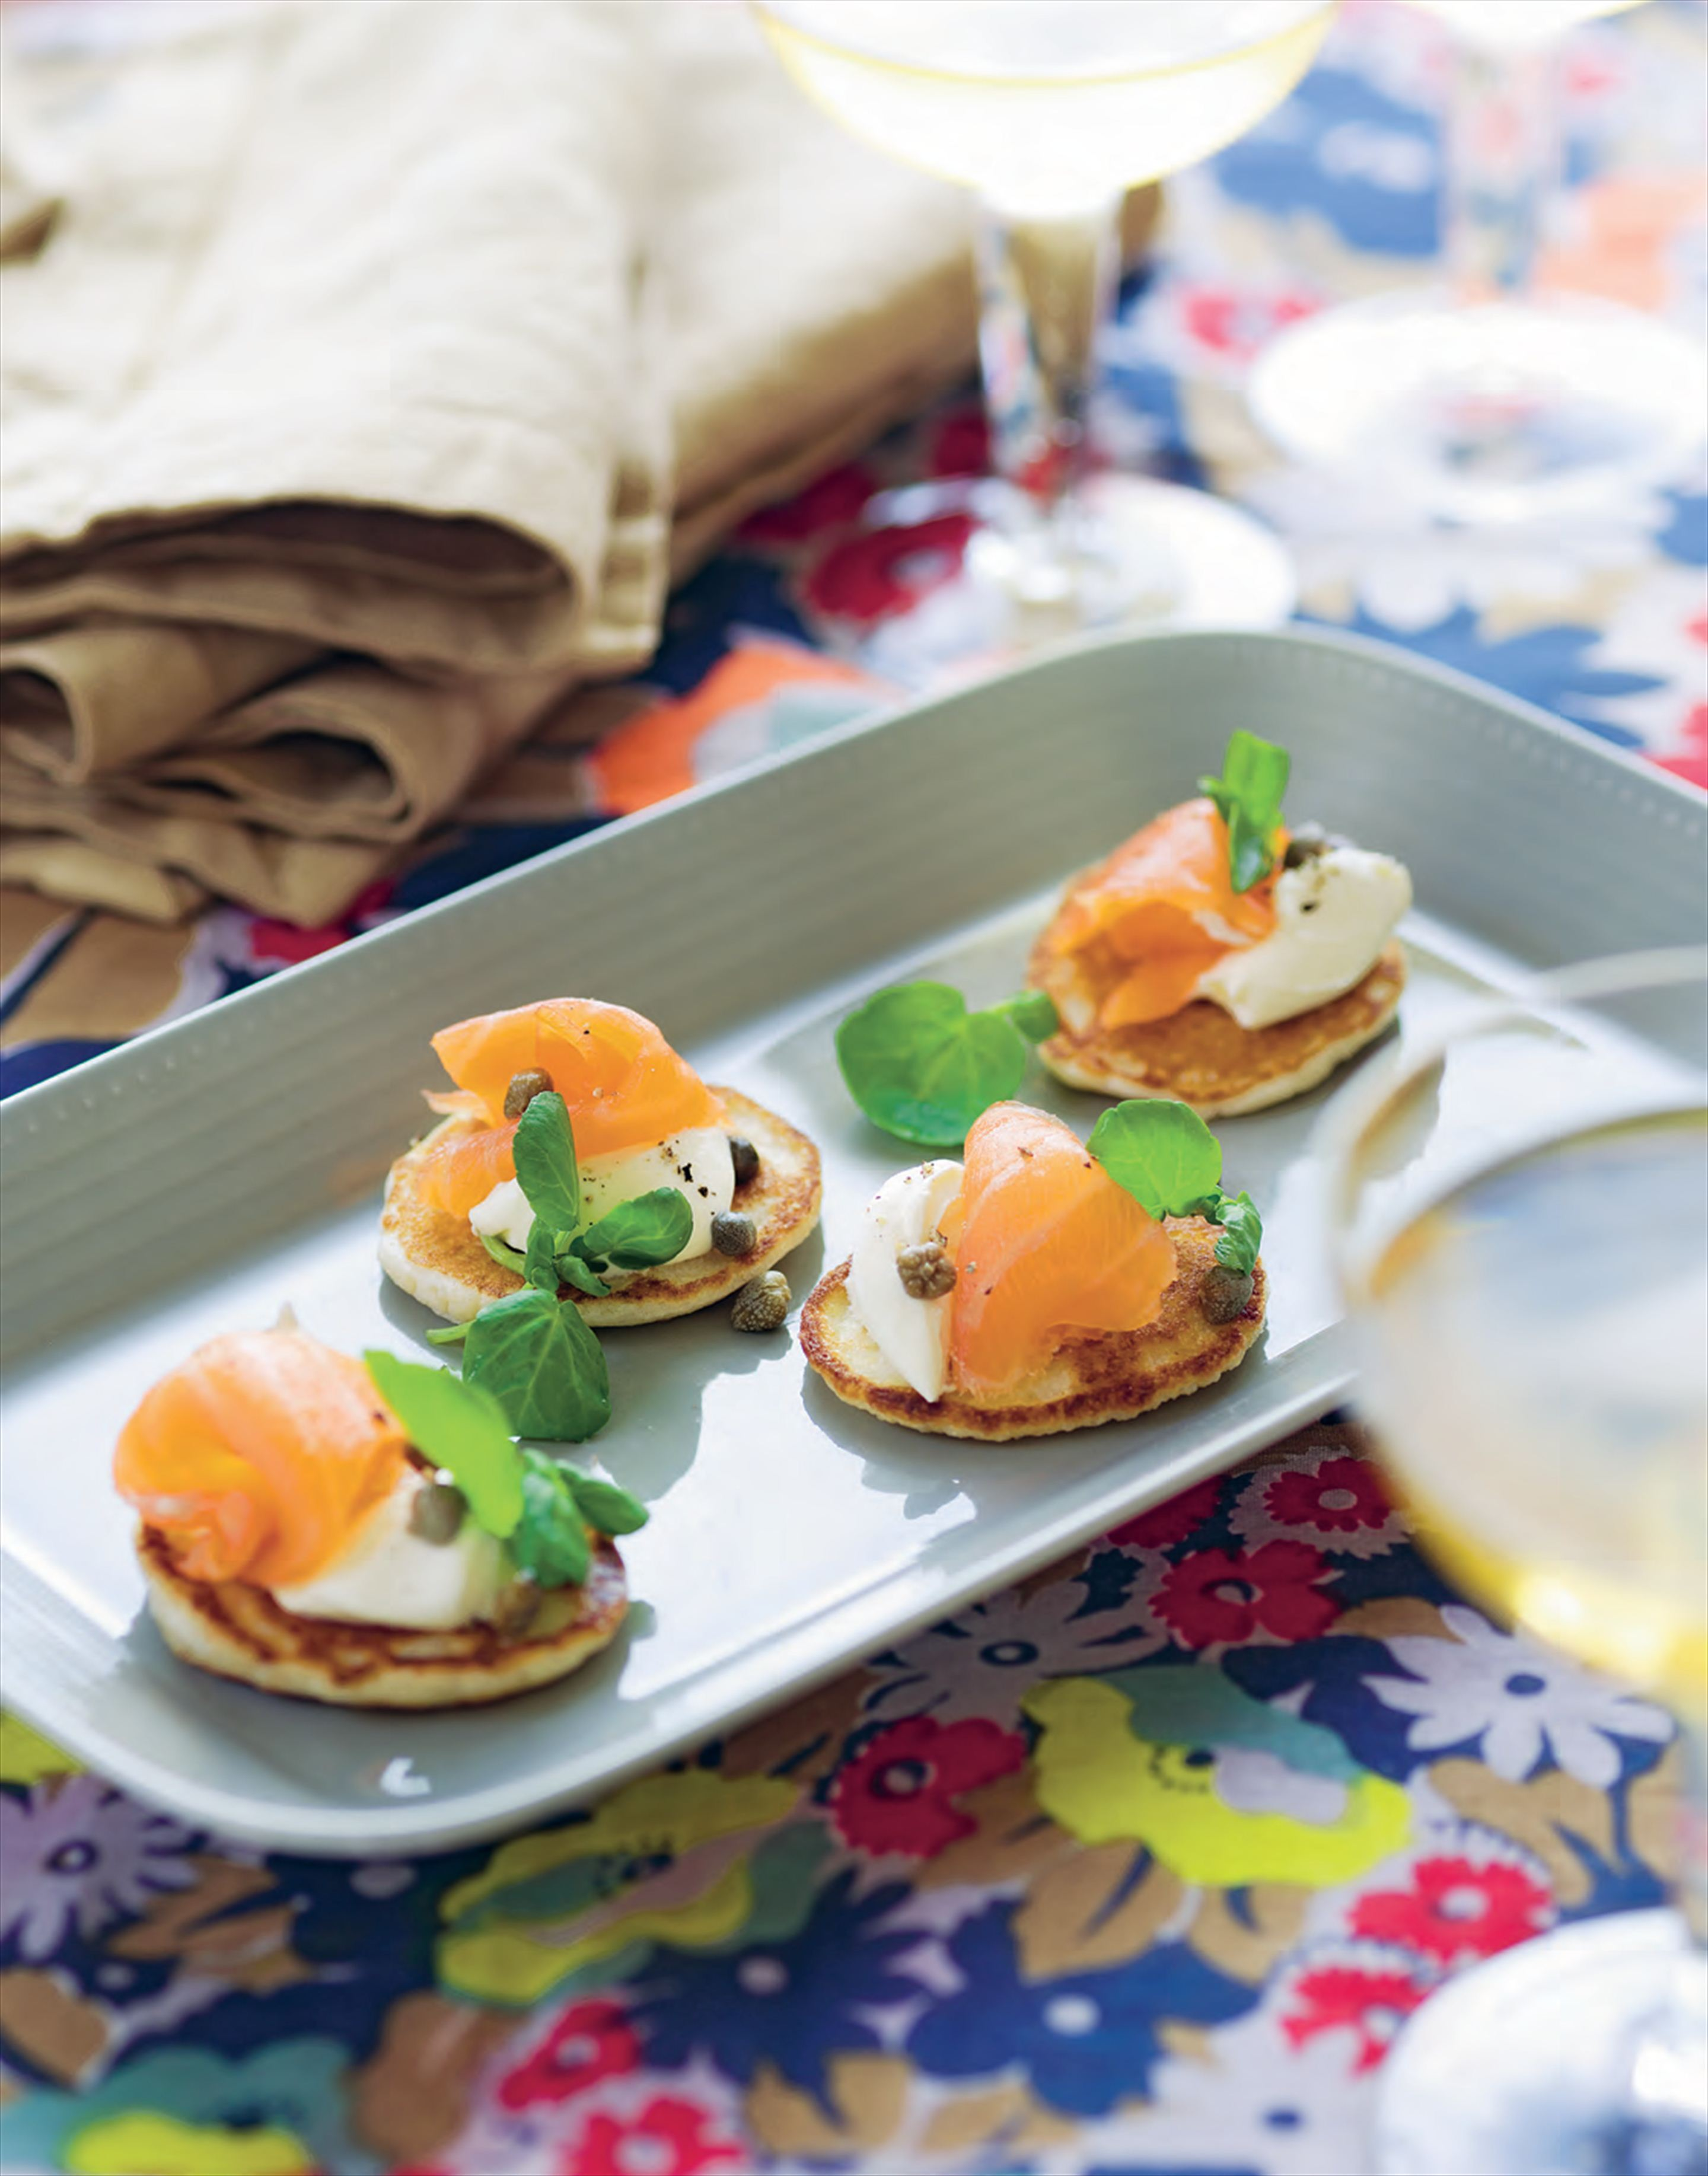 Blinis with smoked salmon or gravlax